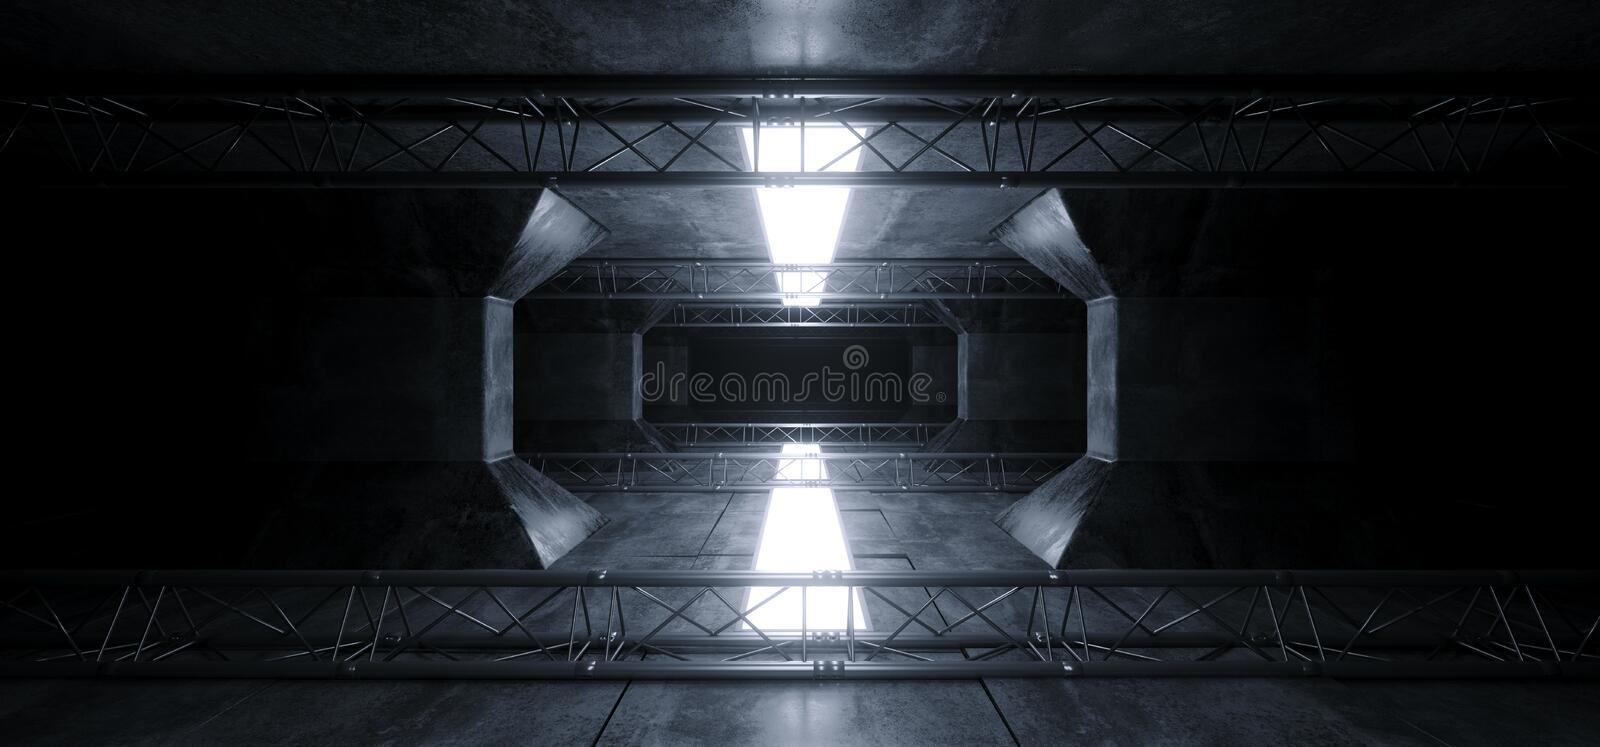 Alien Sci Fi Led White Glowing Dark Light Lines In Futuristic Modern Construction Stage Tunnel Grunge Concrete Reflections royalty free stock images